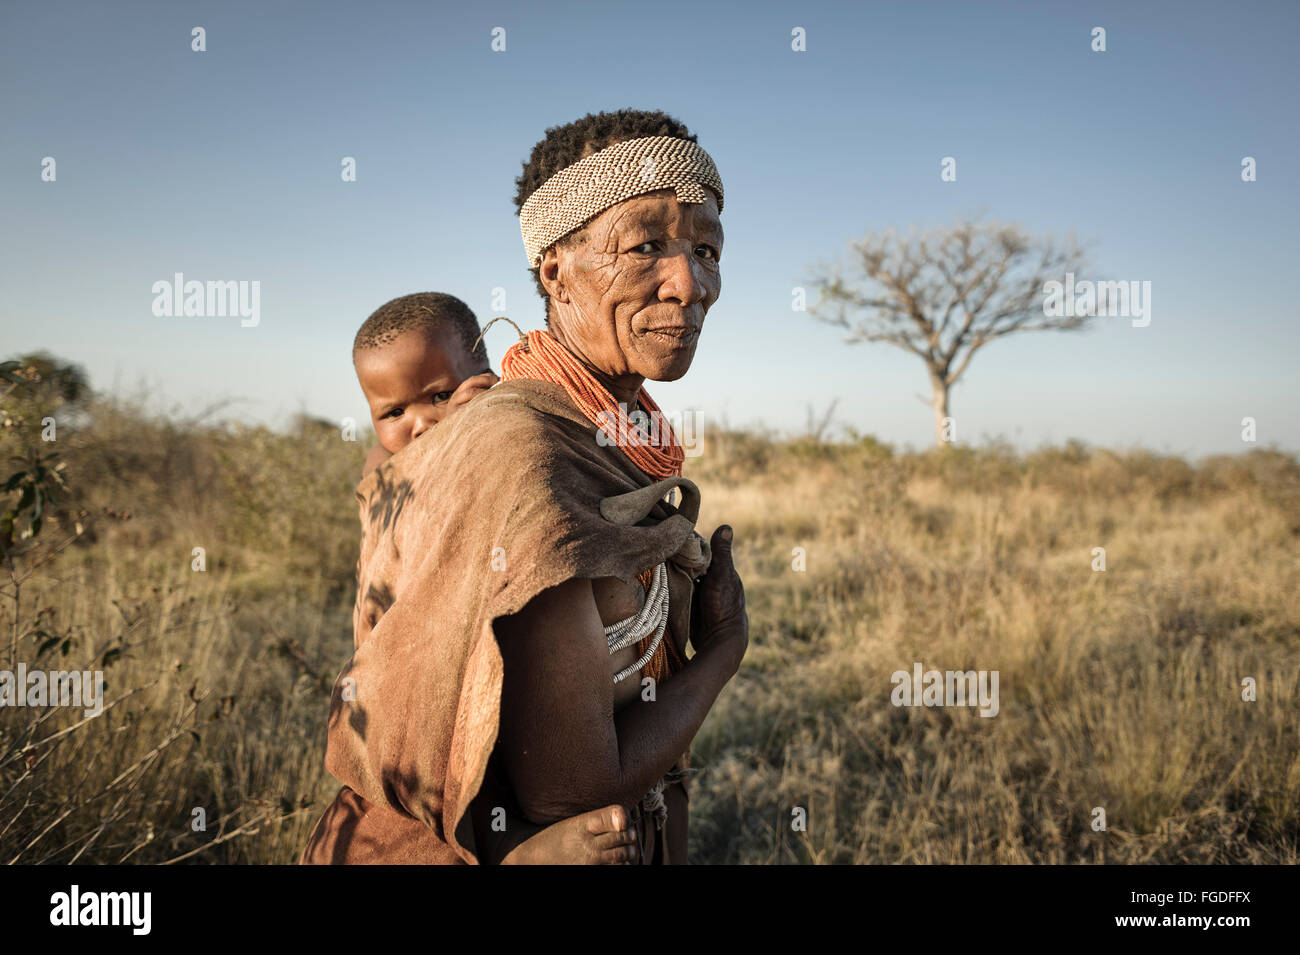 Bushmen woman carrying child at her back - Stock Image